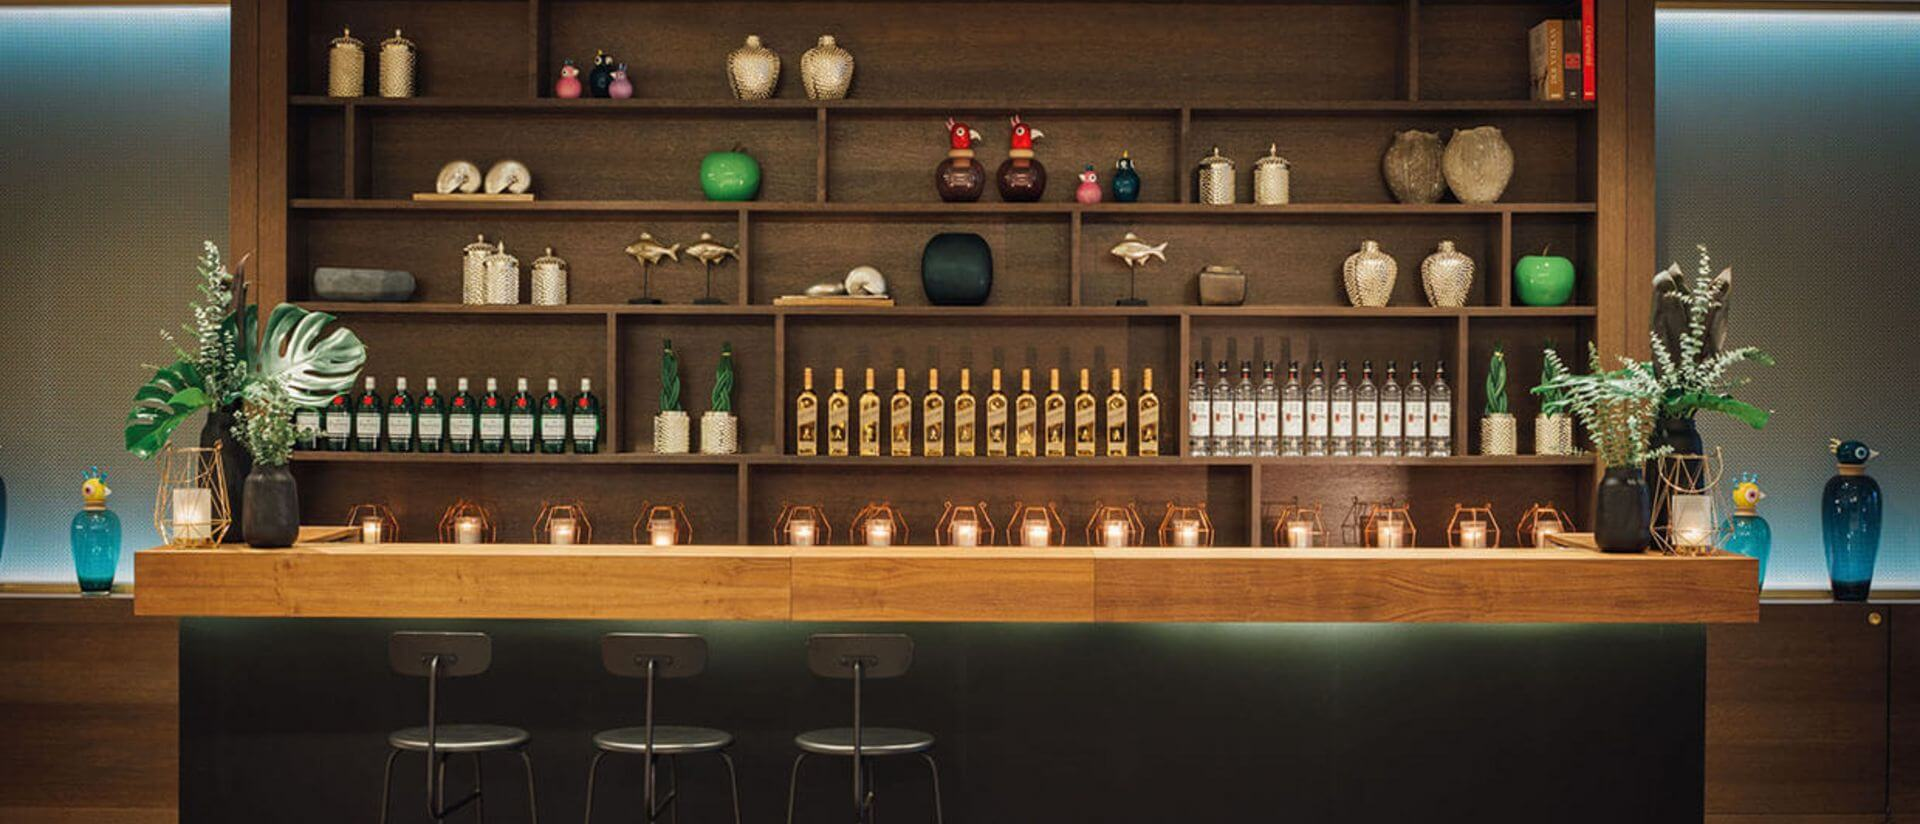 creative event example bar set up